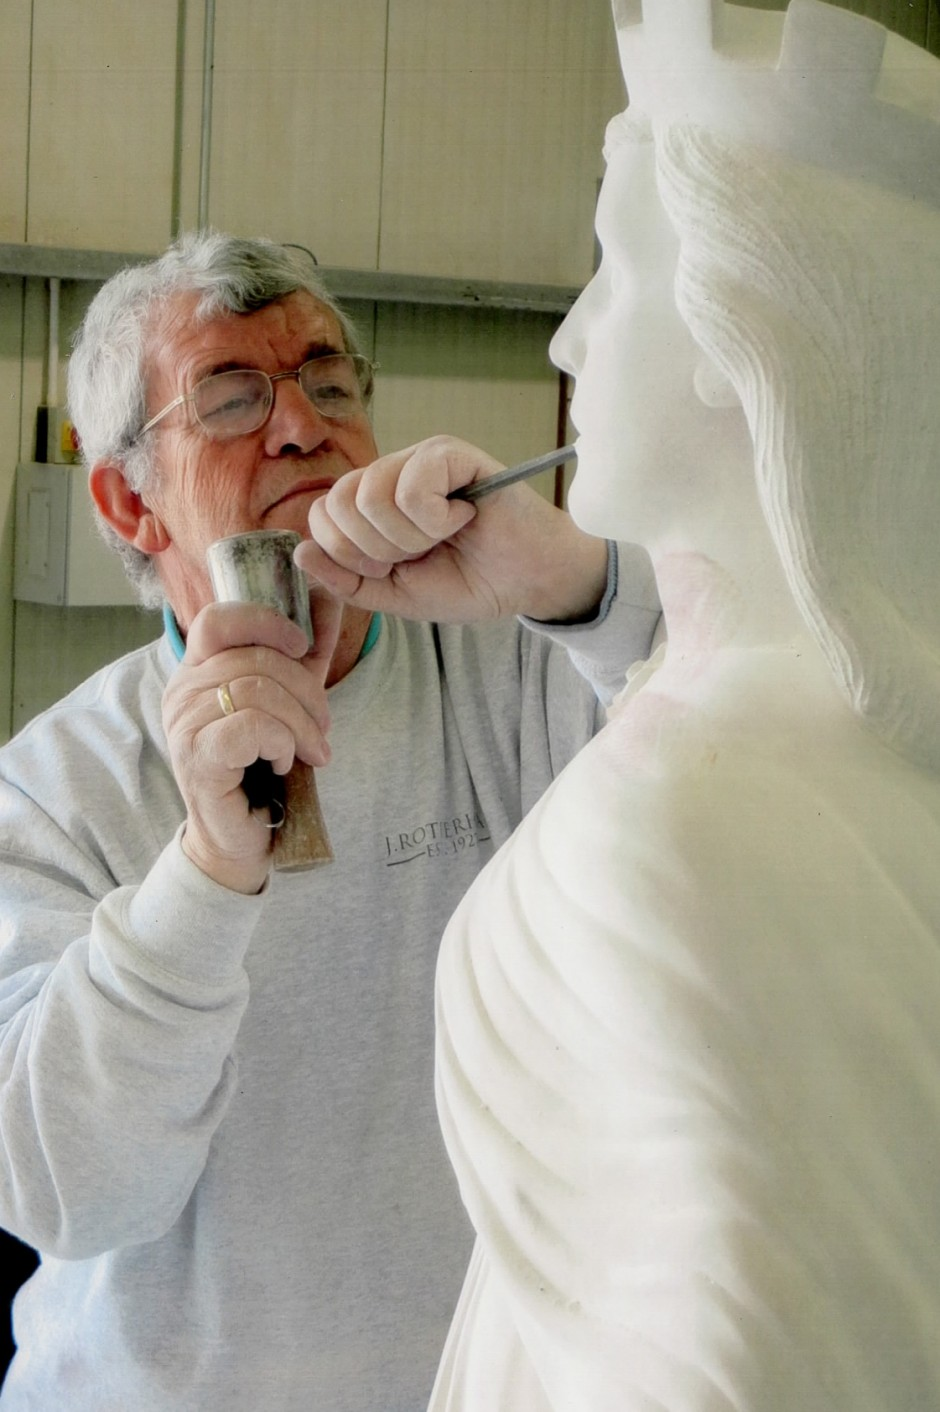 Jose Sarabia at work on the War Memorial Statue - horndean war memorial